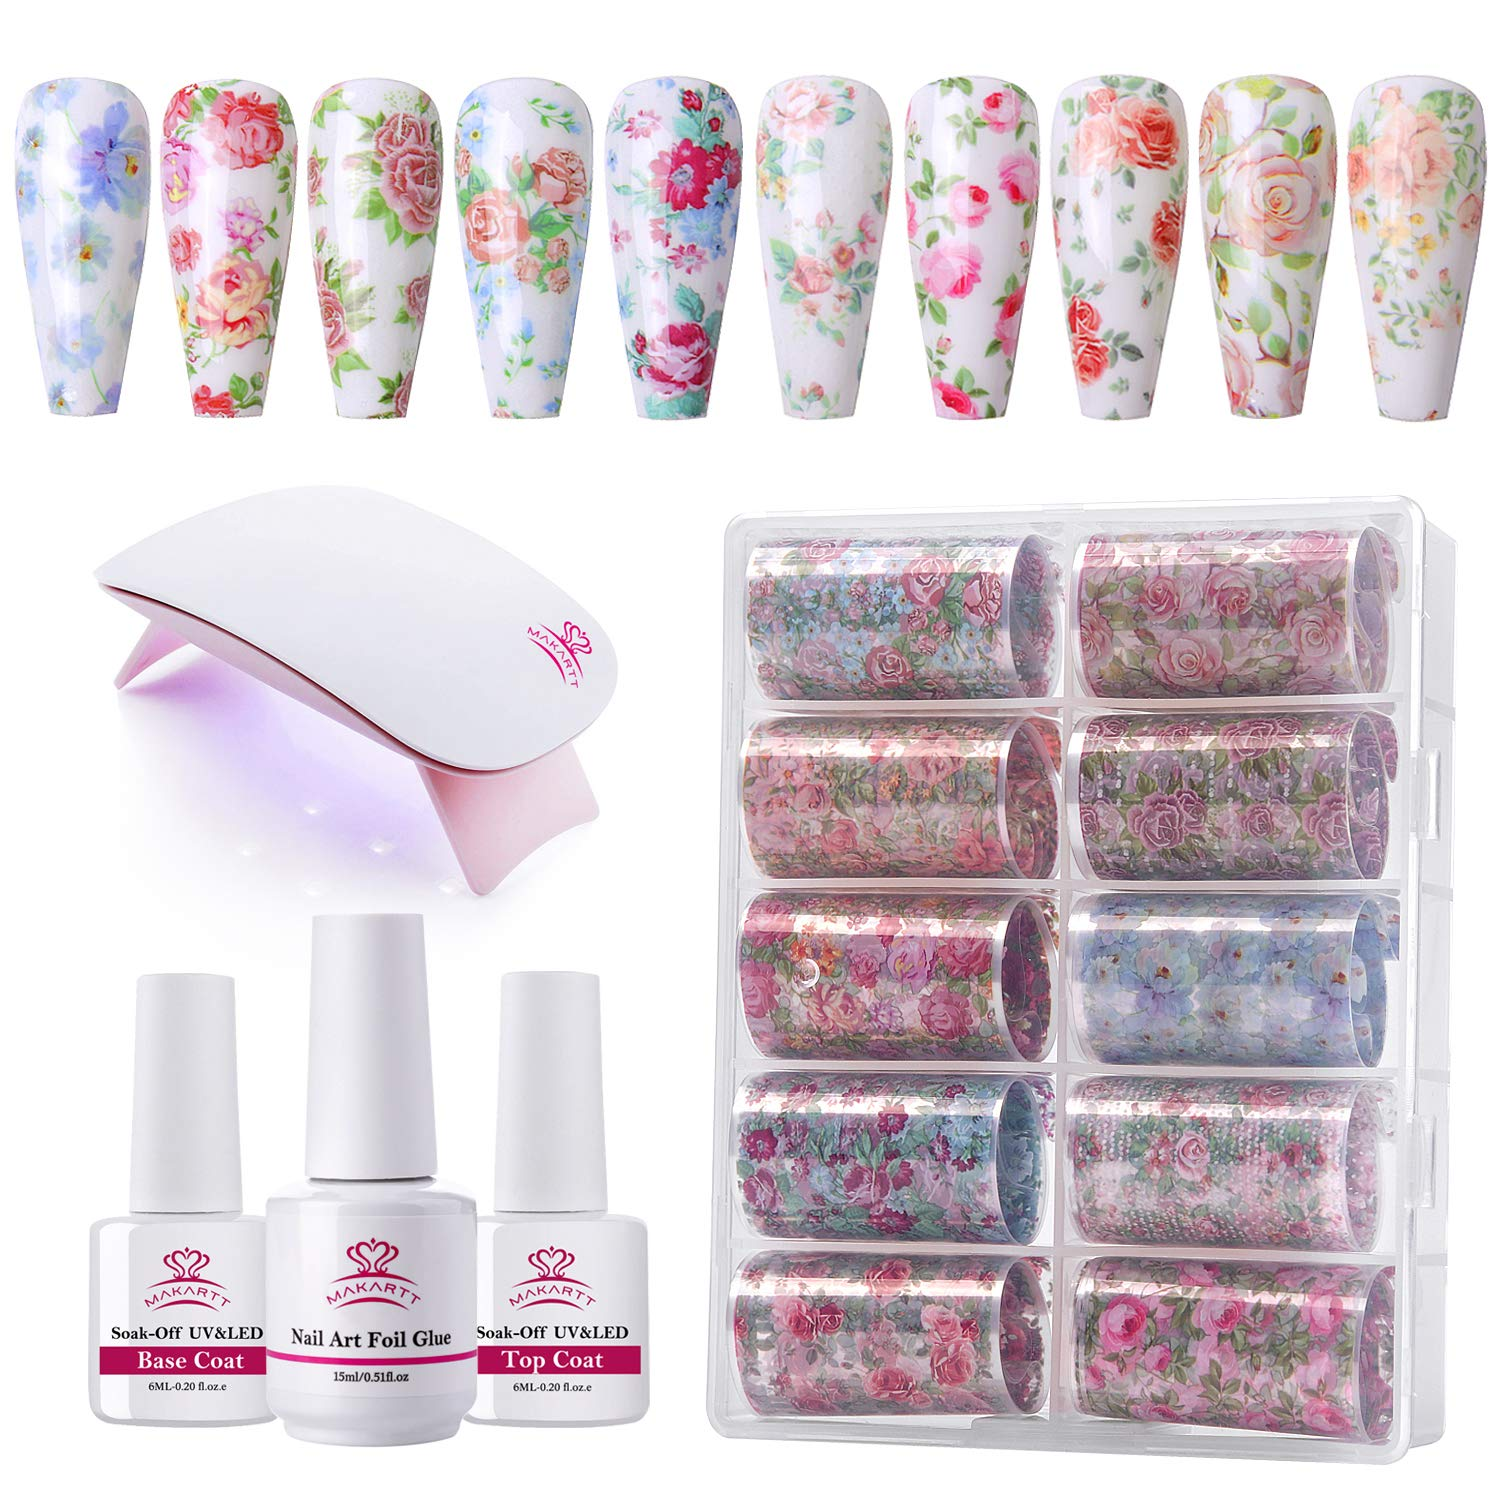 Makartt Nail Art Foil Glue Gel for Stickers Mesa Mall with Led Colorado Springs Mall L Mini